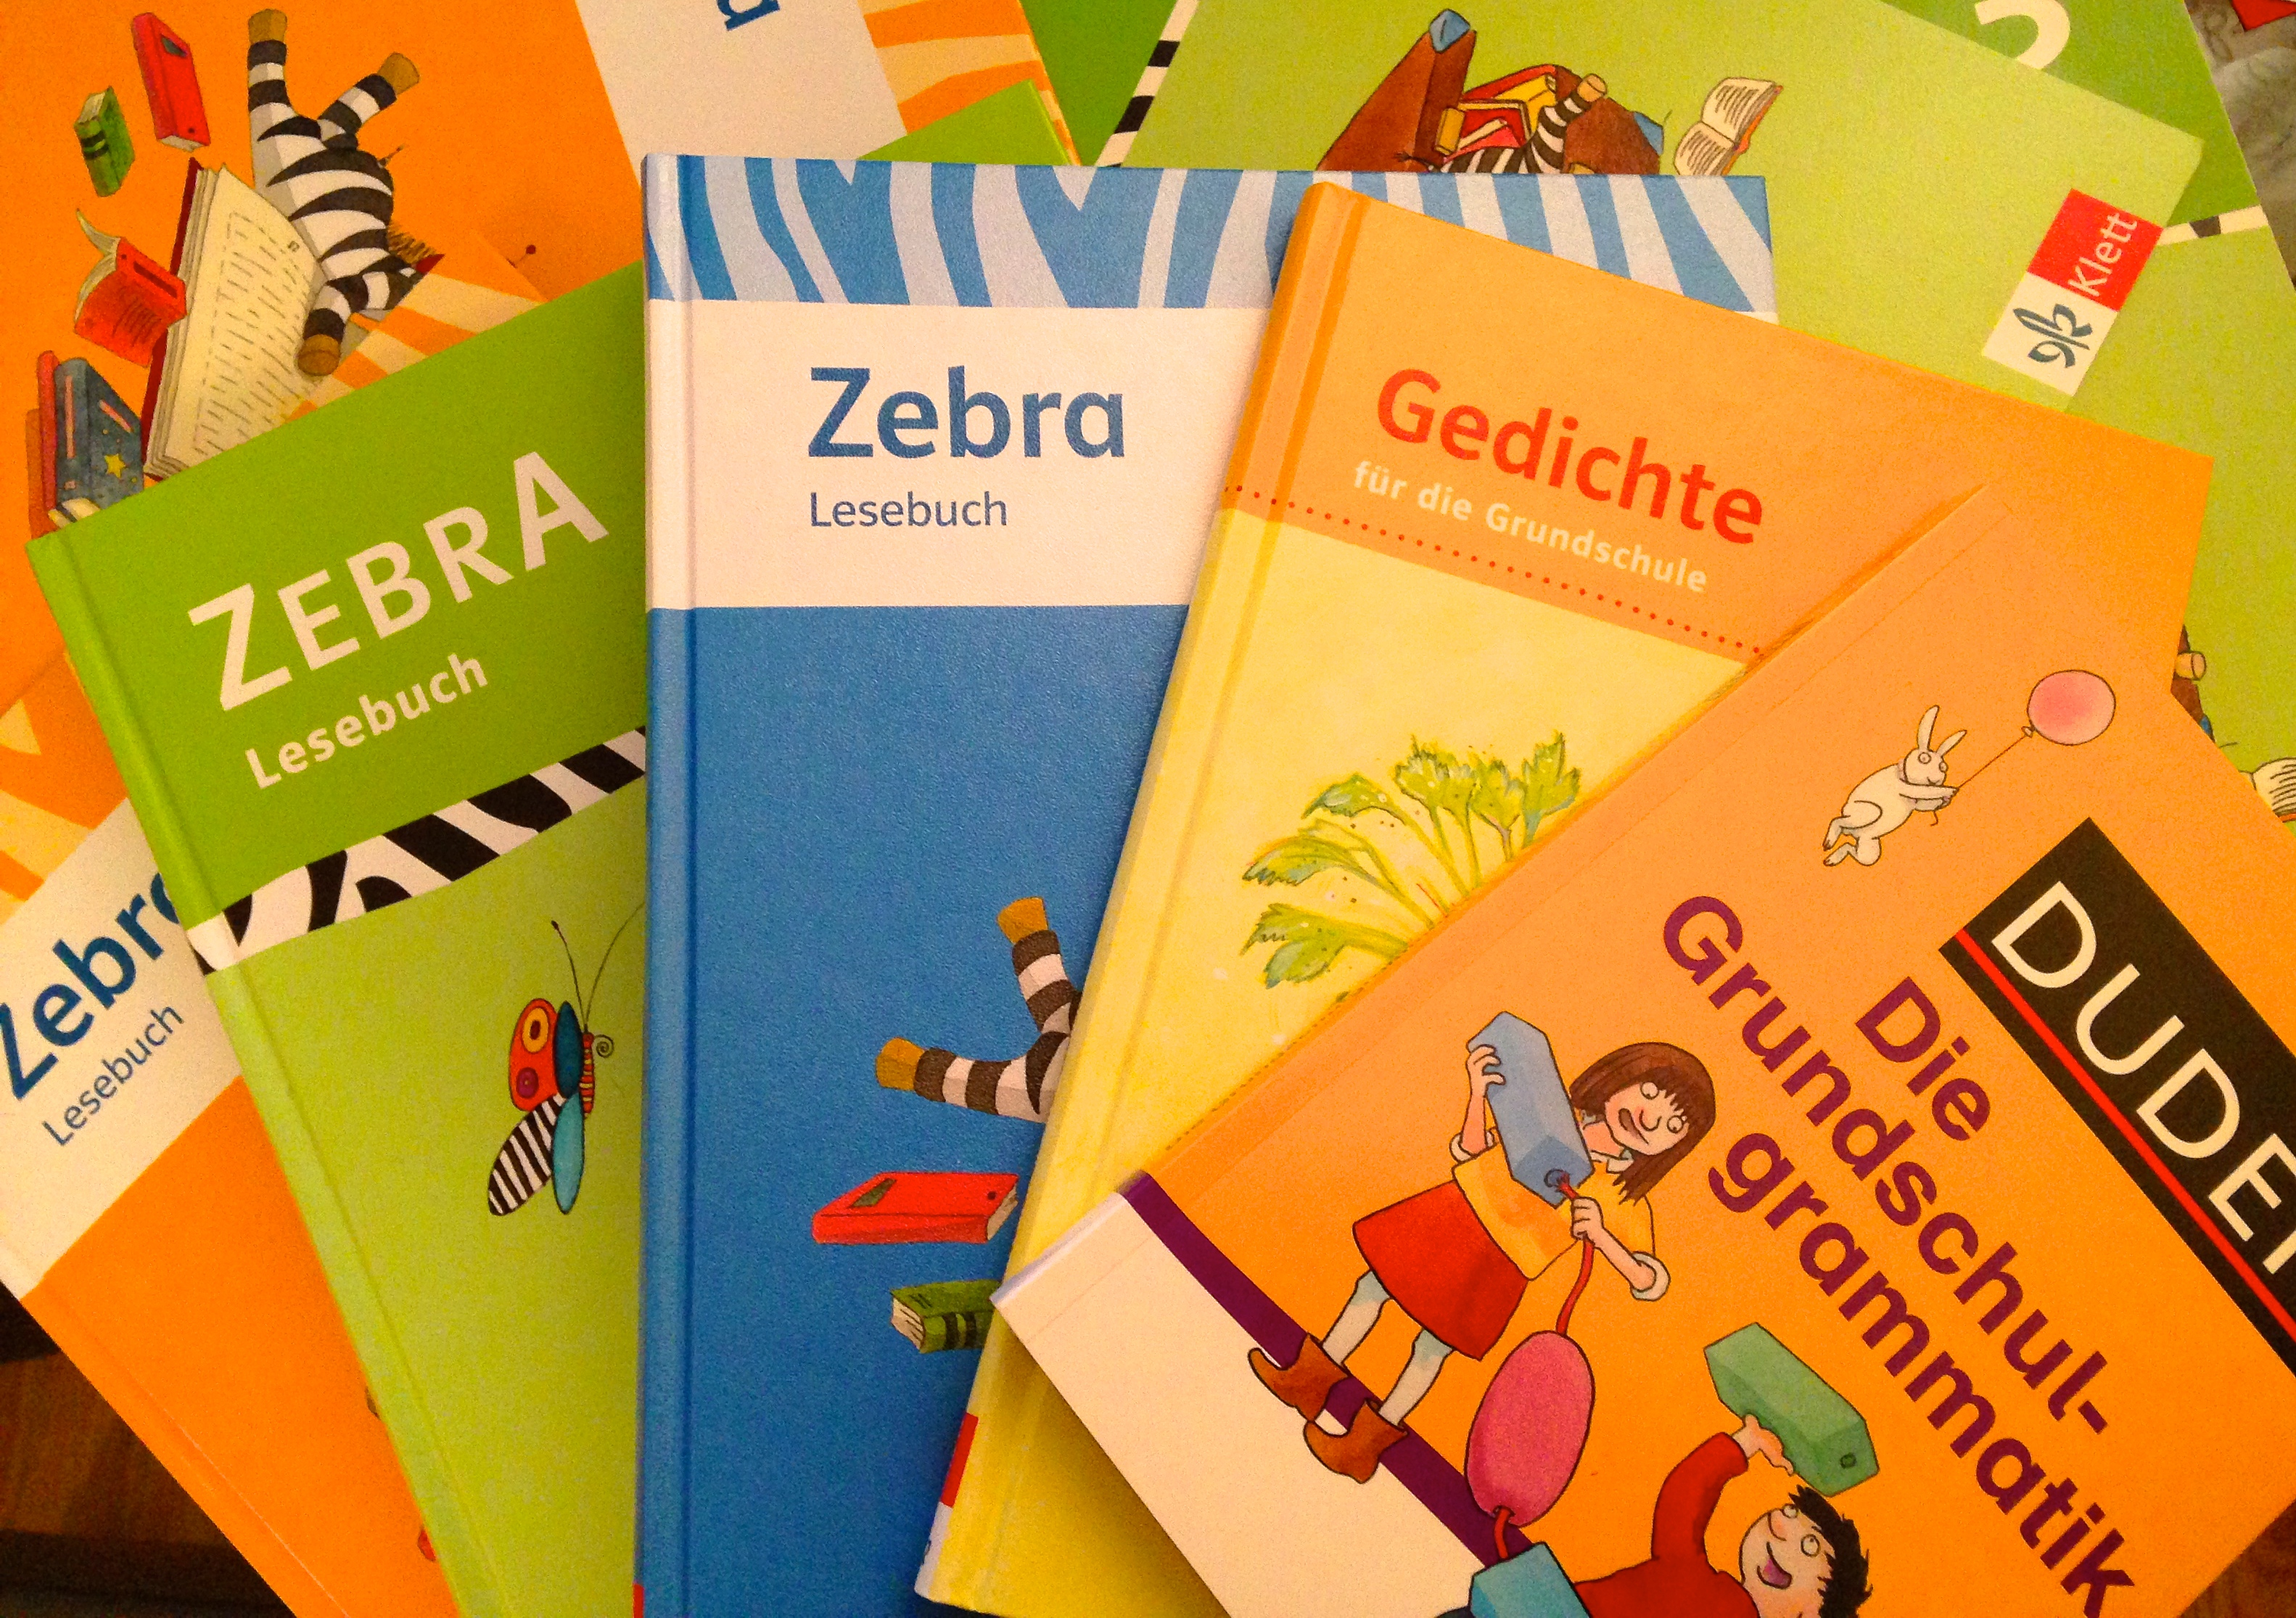 Book Grant From The Zfa German School Of Madison